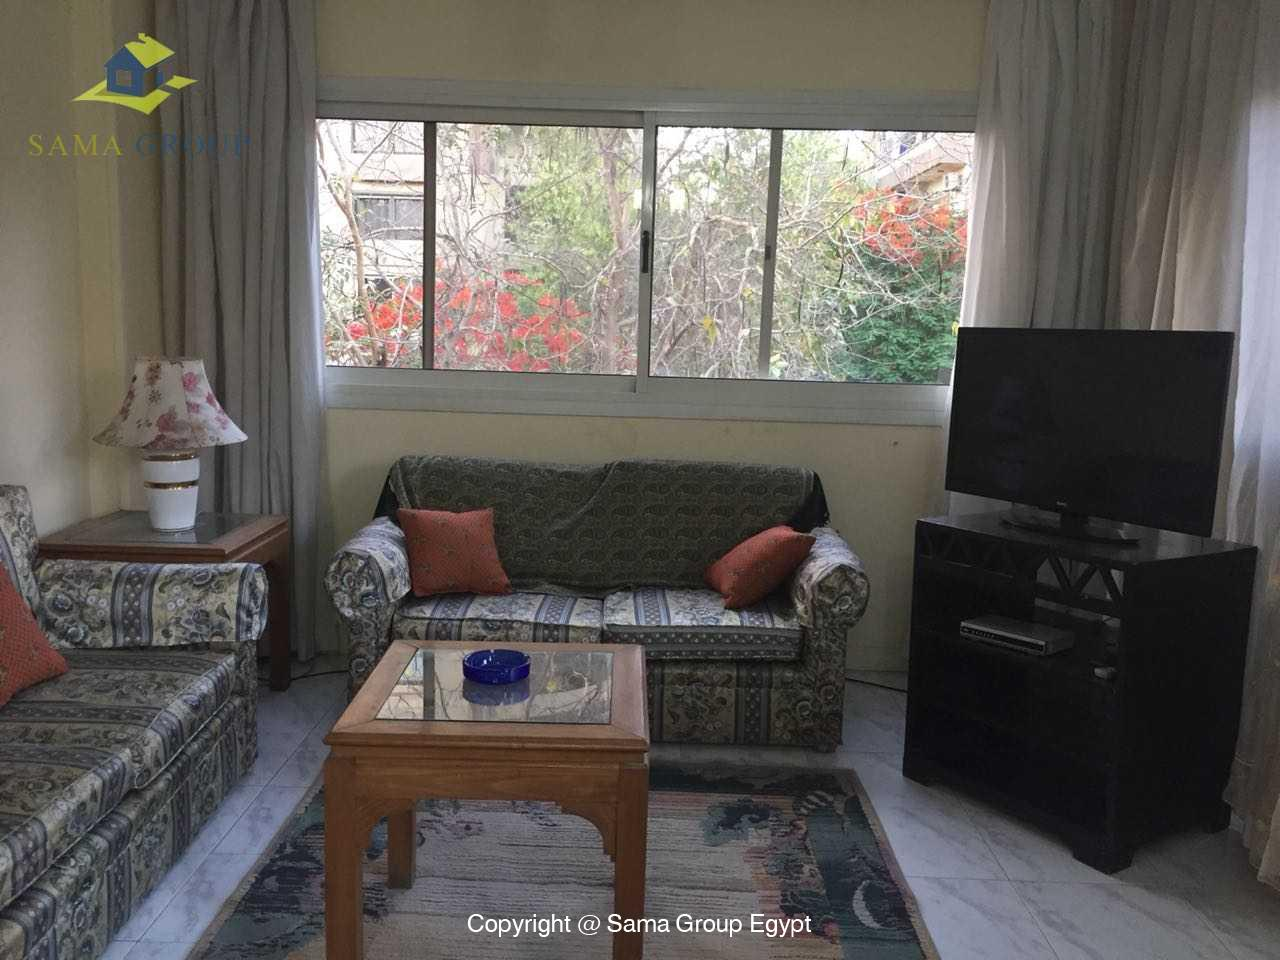 Furnished Apartment For Rent In Maadi,Furnished,Apartment NO #7